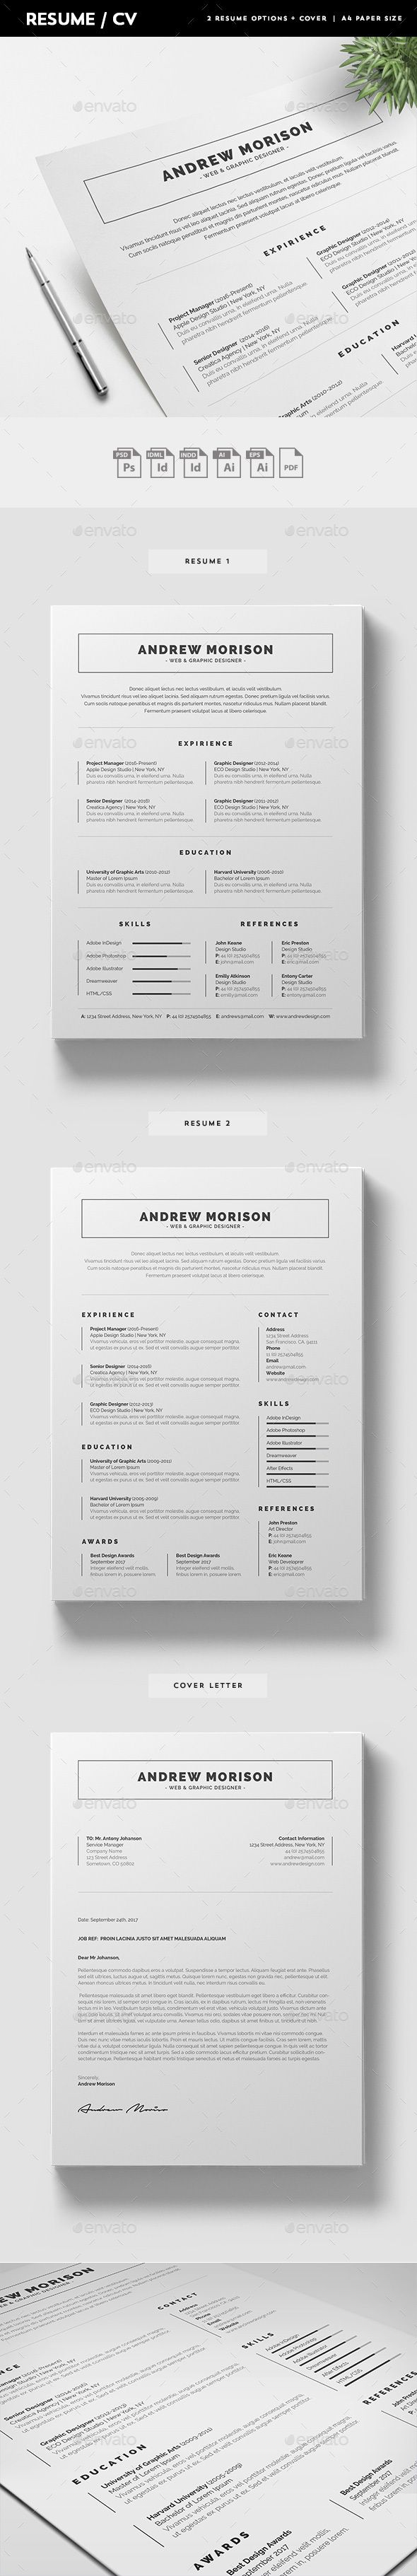 pin by fdesign nerd on resume 2018